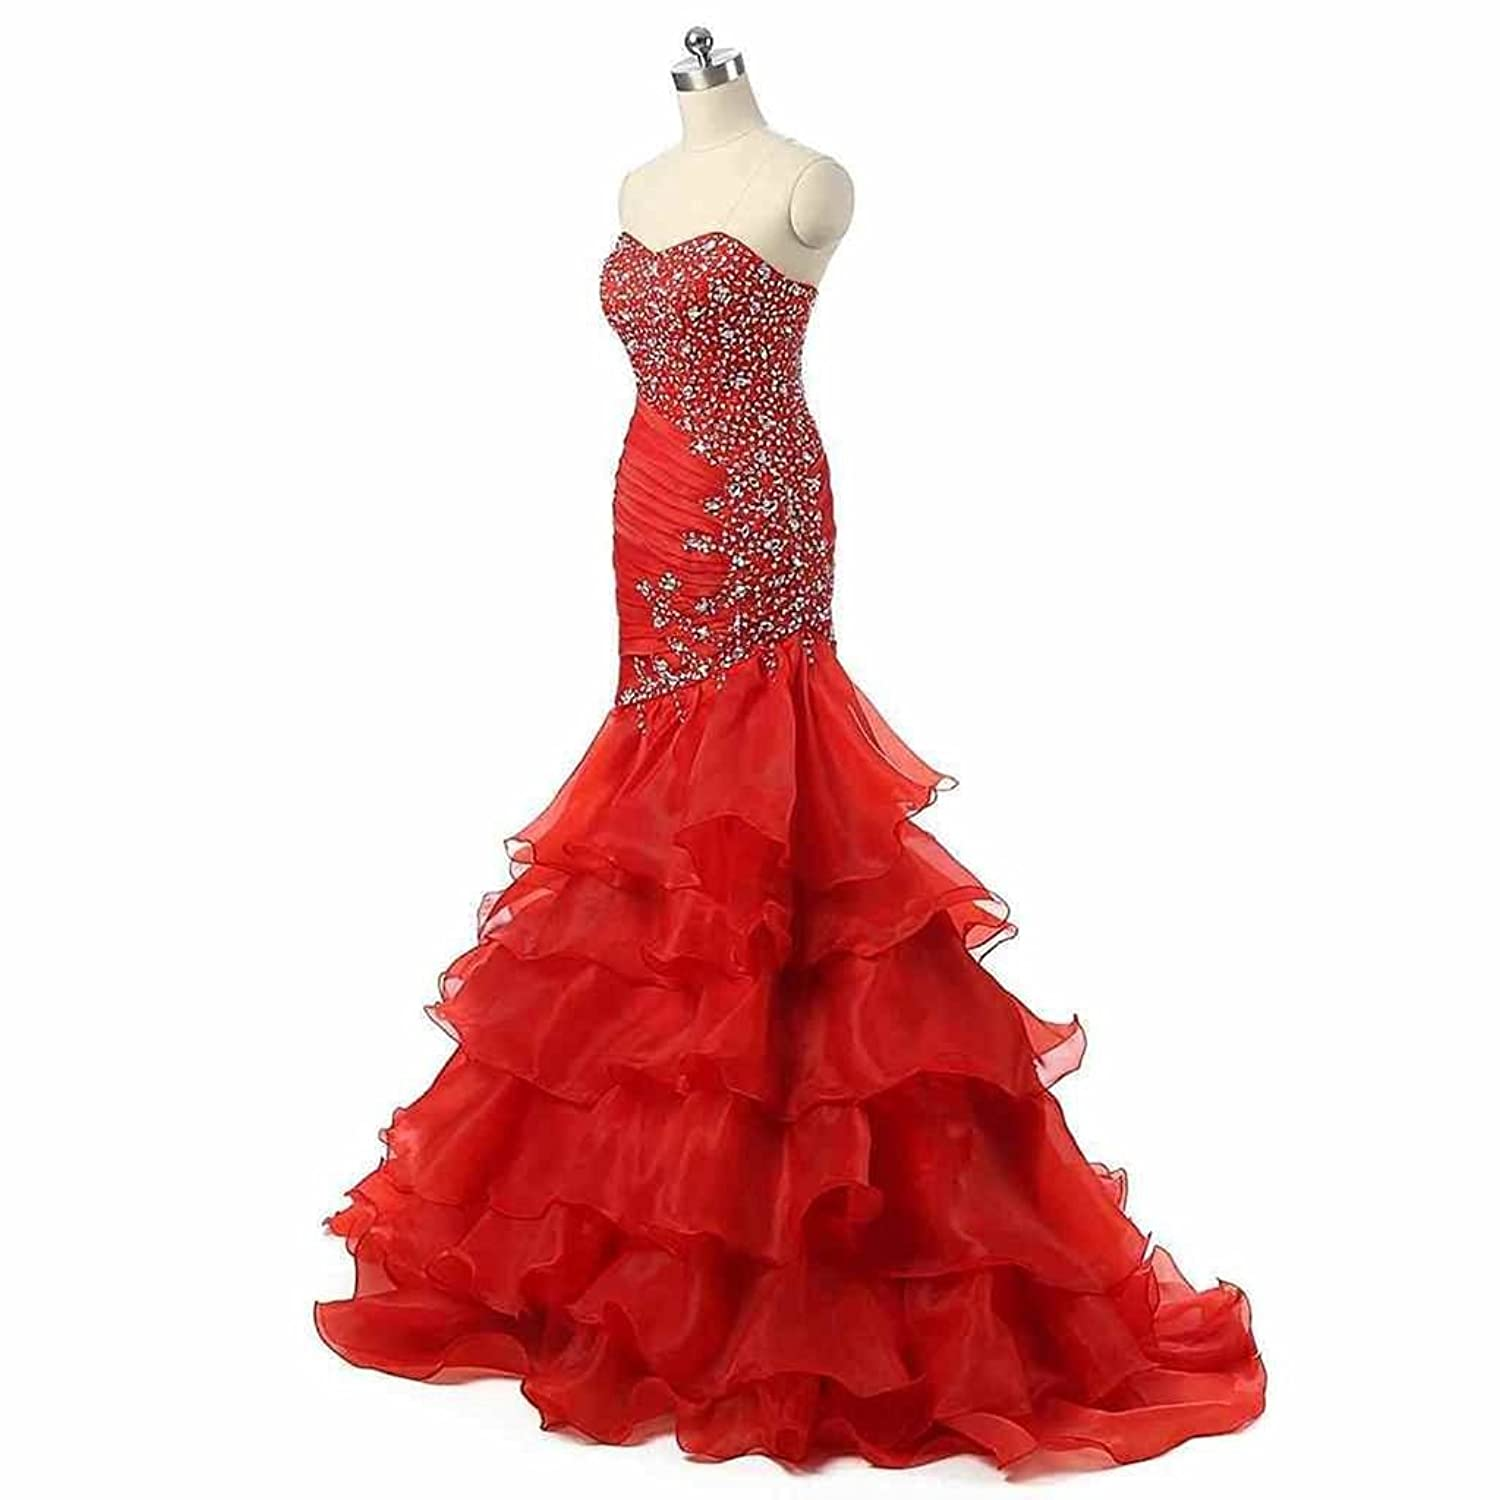 Amazon.com: MerryJuly Womens Beaded Sweetheart Lace Up Mermaid Prom Dresses 2017 Red: Clothing